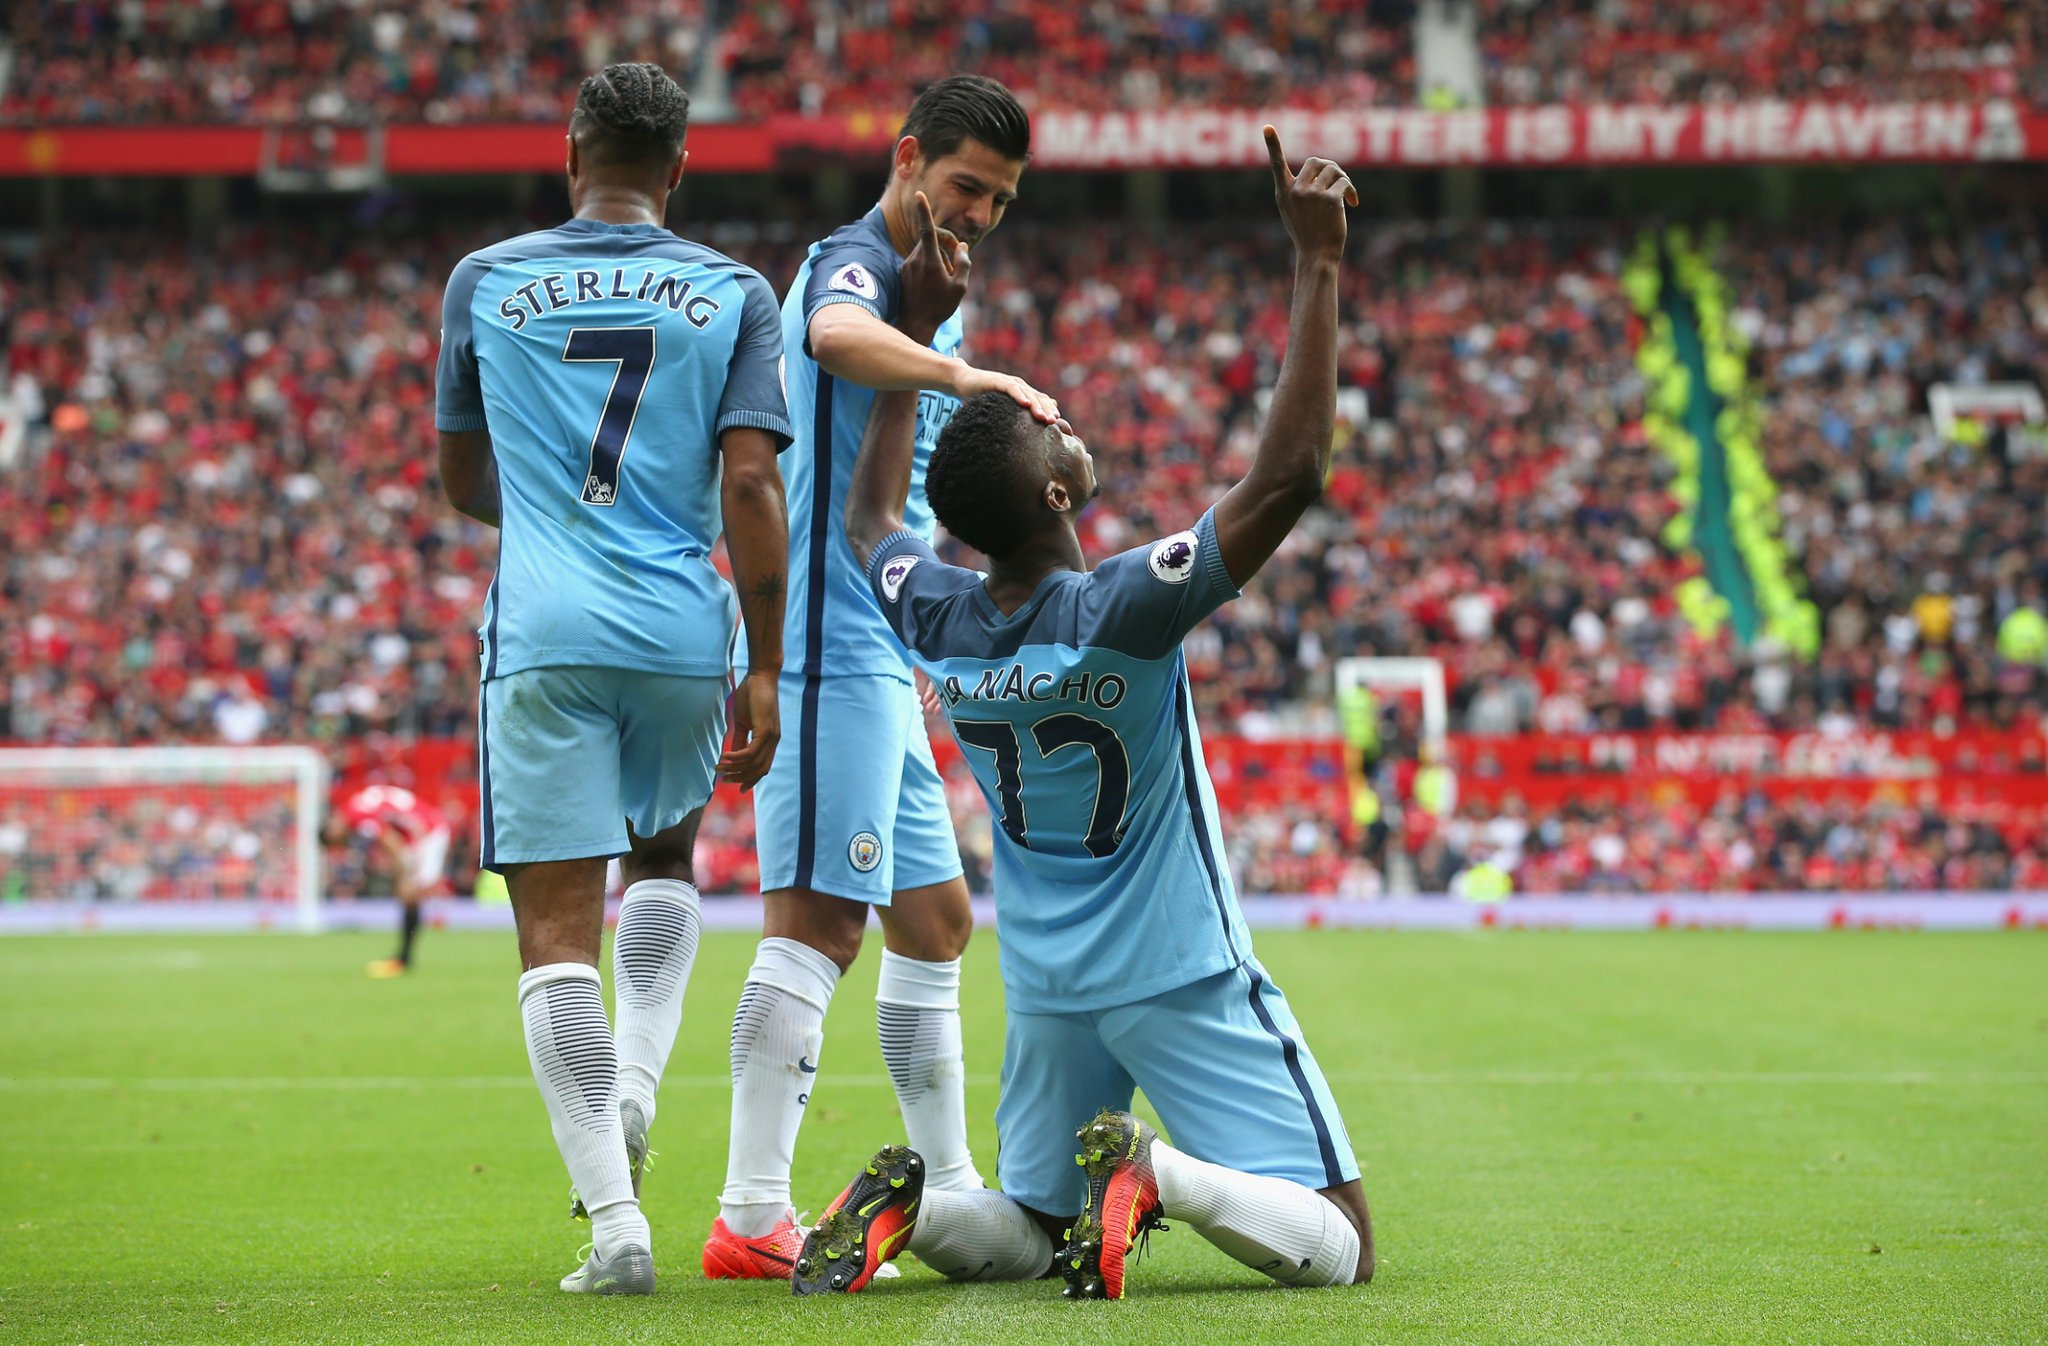 Iheanacho Scores, Assists As City Win Manchester Derby